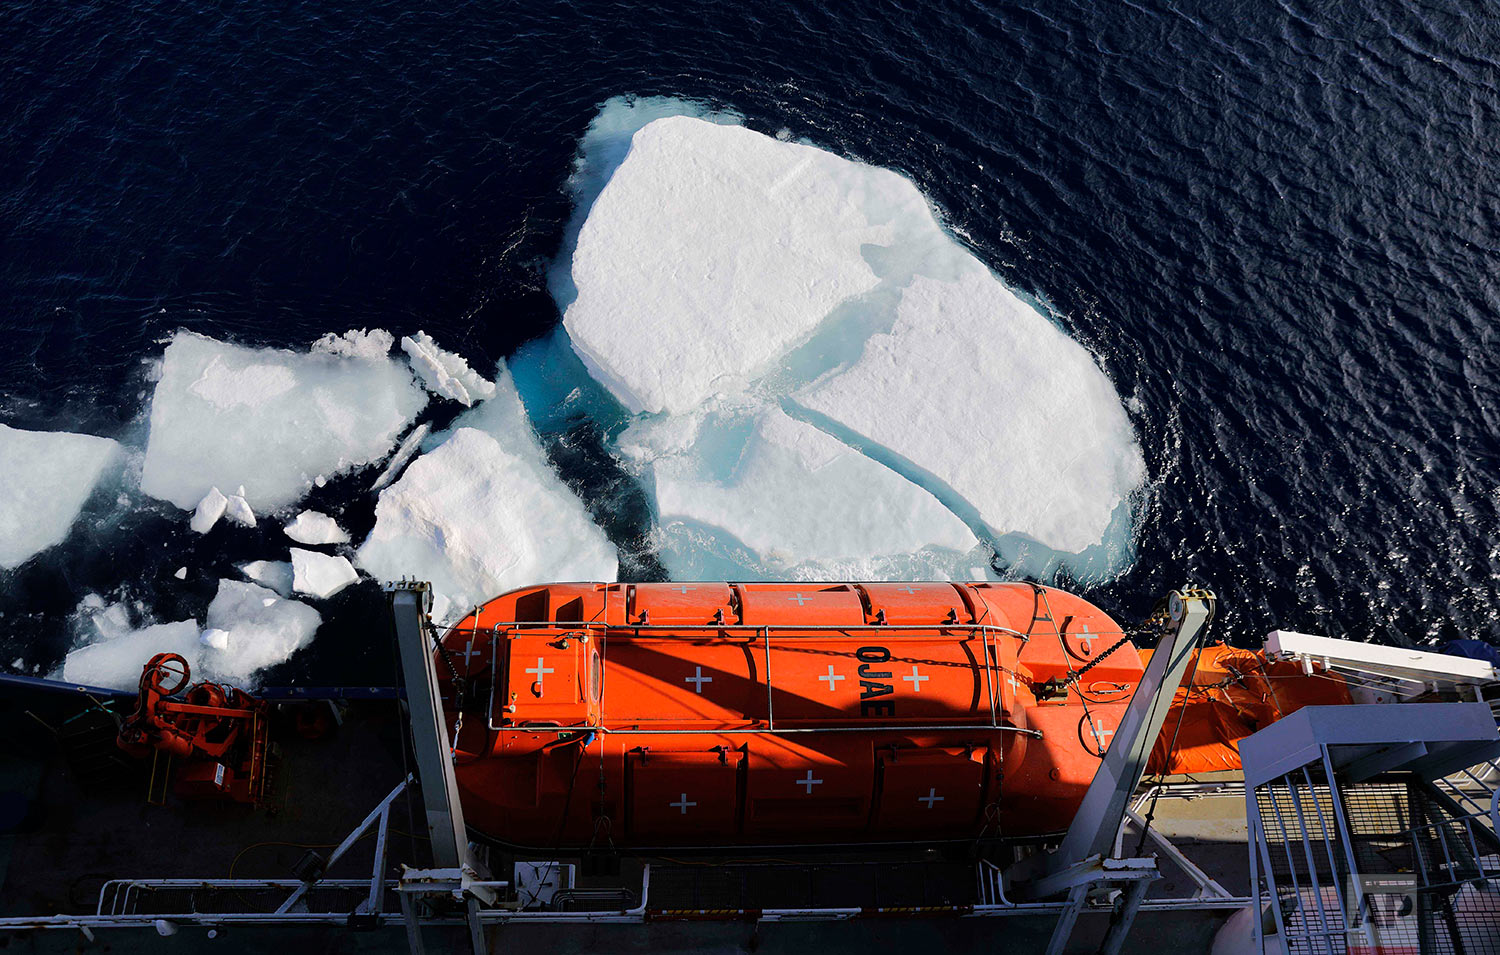 Sea ice breaks apart as the Finnish icebreaker MSV Nordica equipped with enclosed life boats sails the Chukchi Sea to traverse the Arctic's Northwest Passage, Sunday, July 16, 2017. (AP Photo/David Goldman)